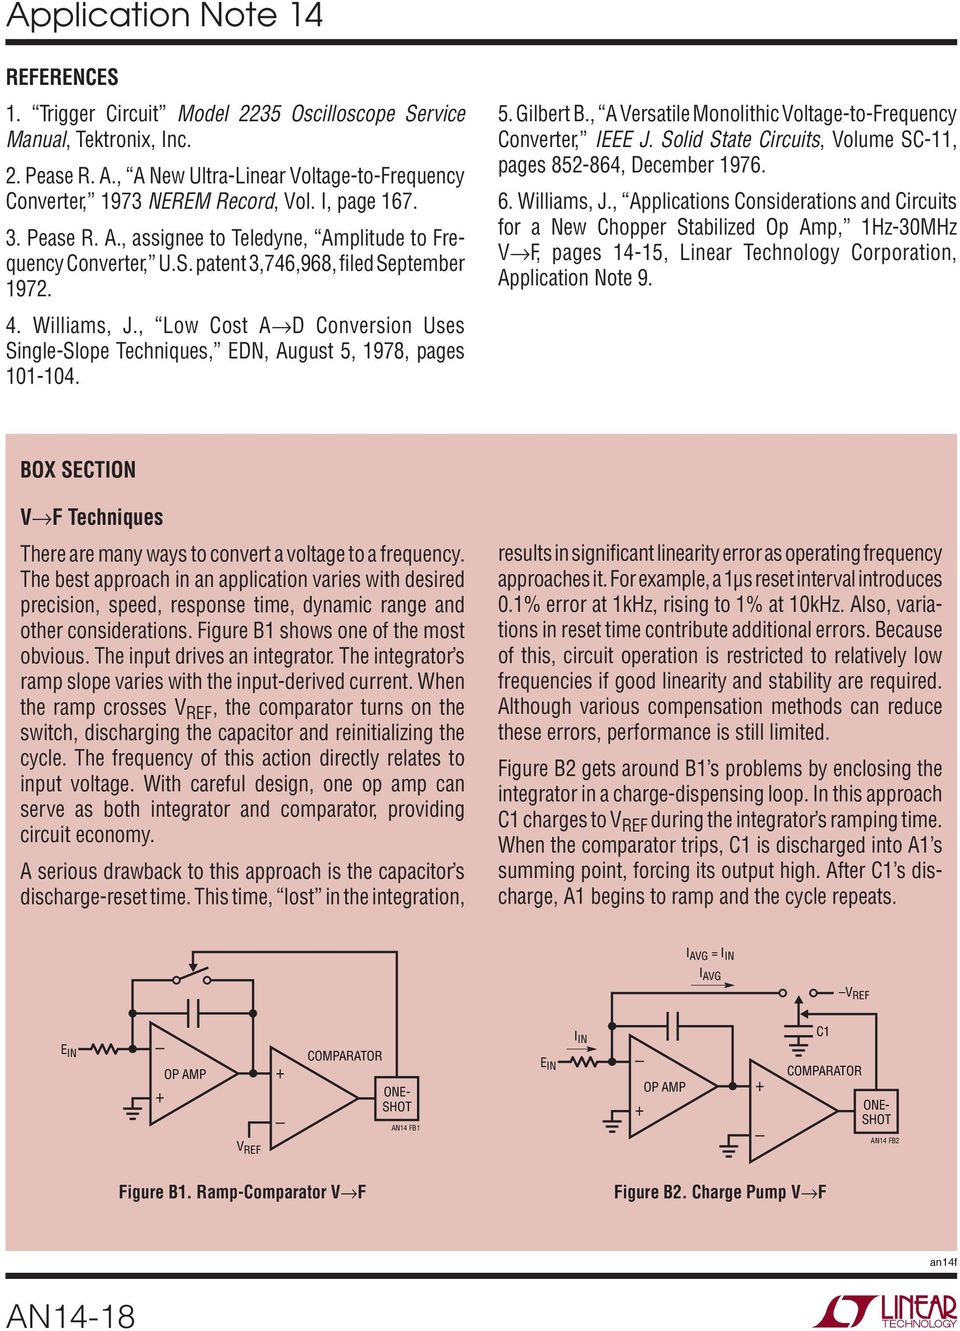 Designs For High Performance Voltage To Frequency Converters Pdf Triangle Sine Wave Converter Circuit Basiccircuit A Versatile Monolithic Ieee J Solid State